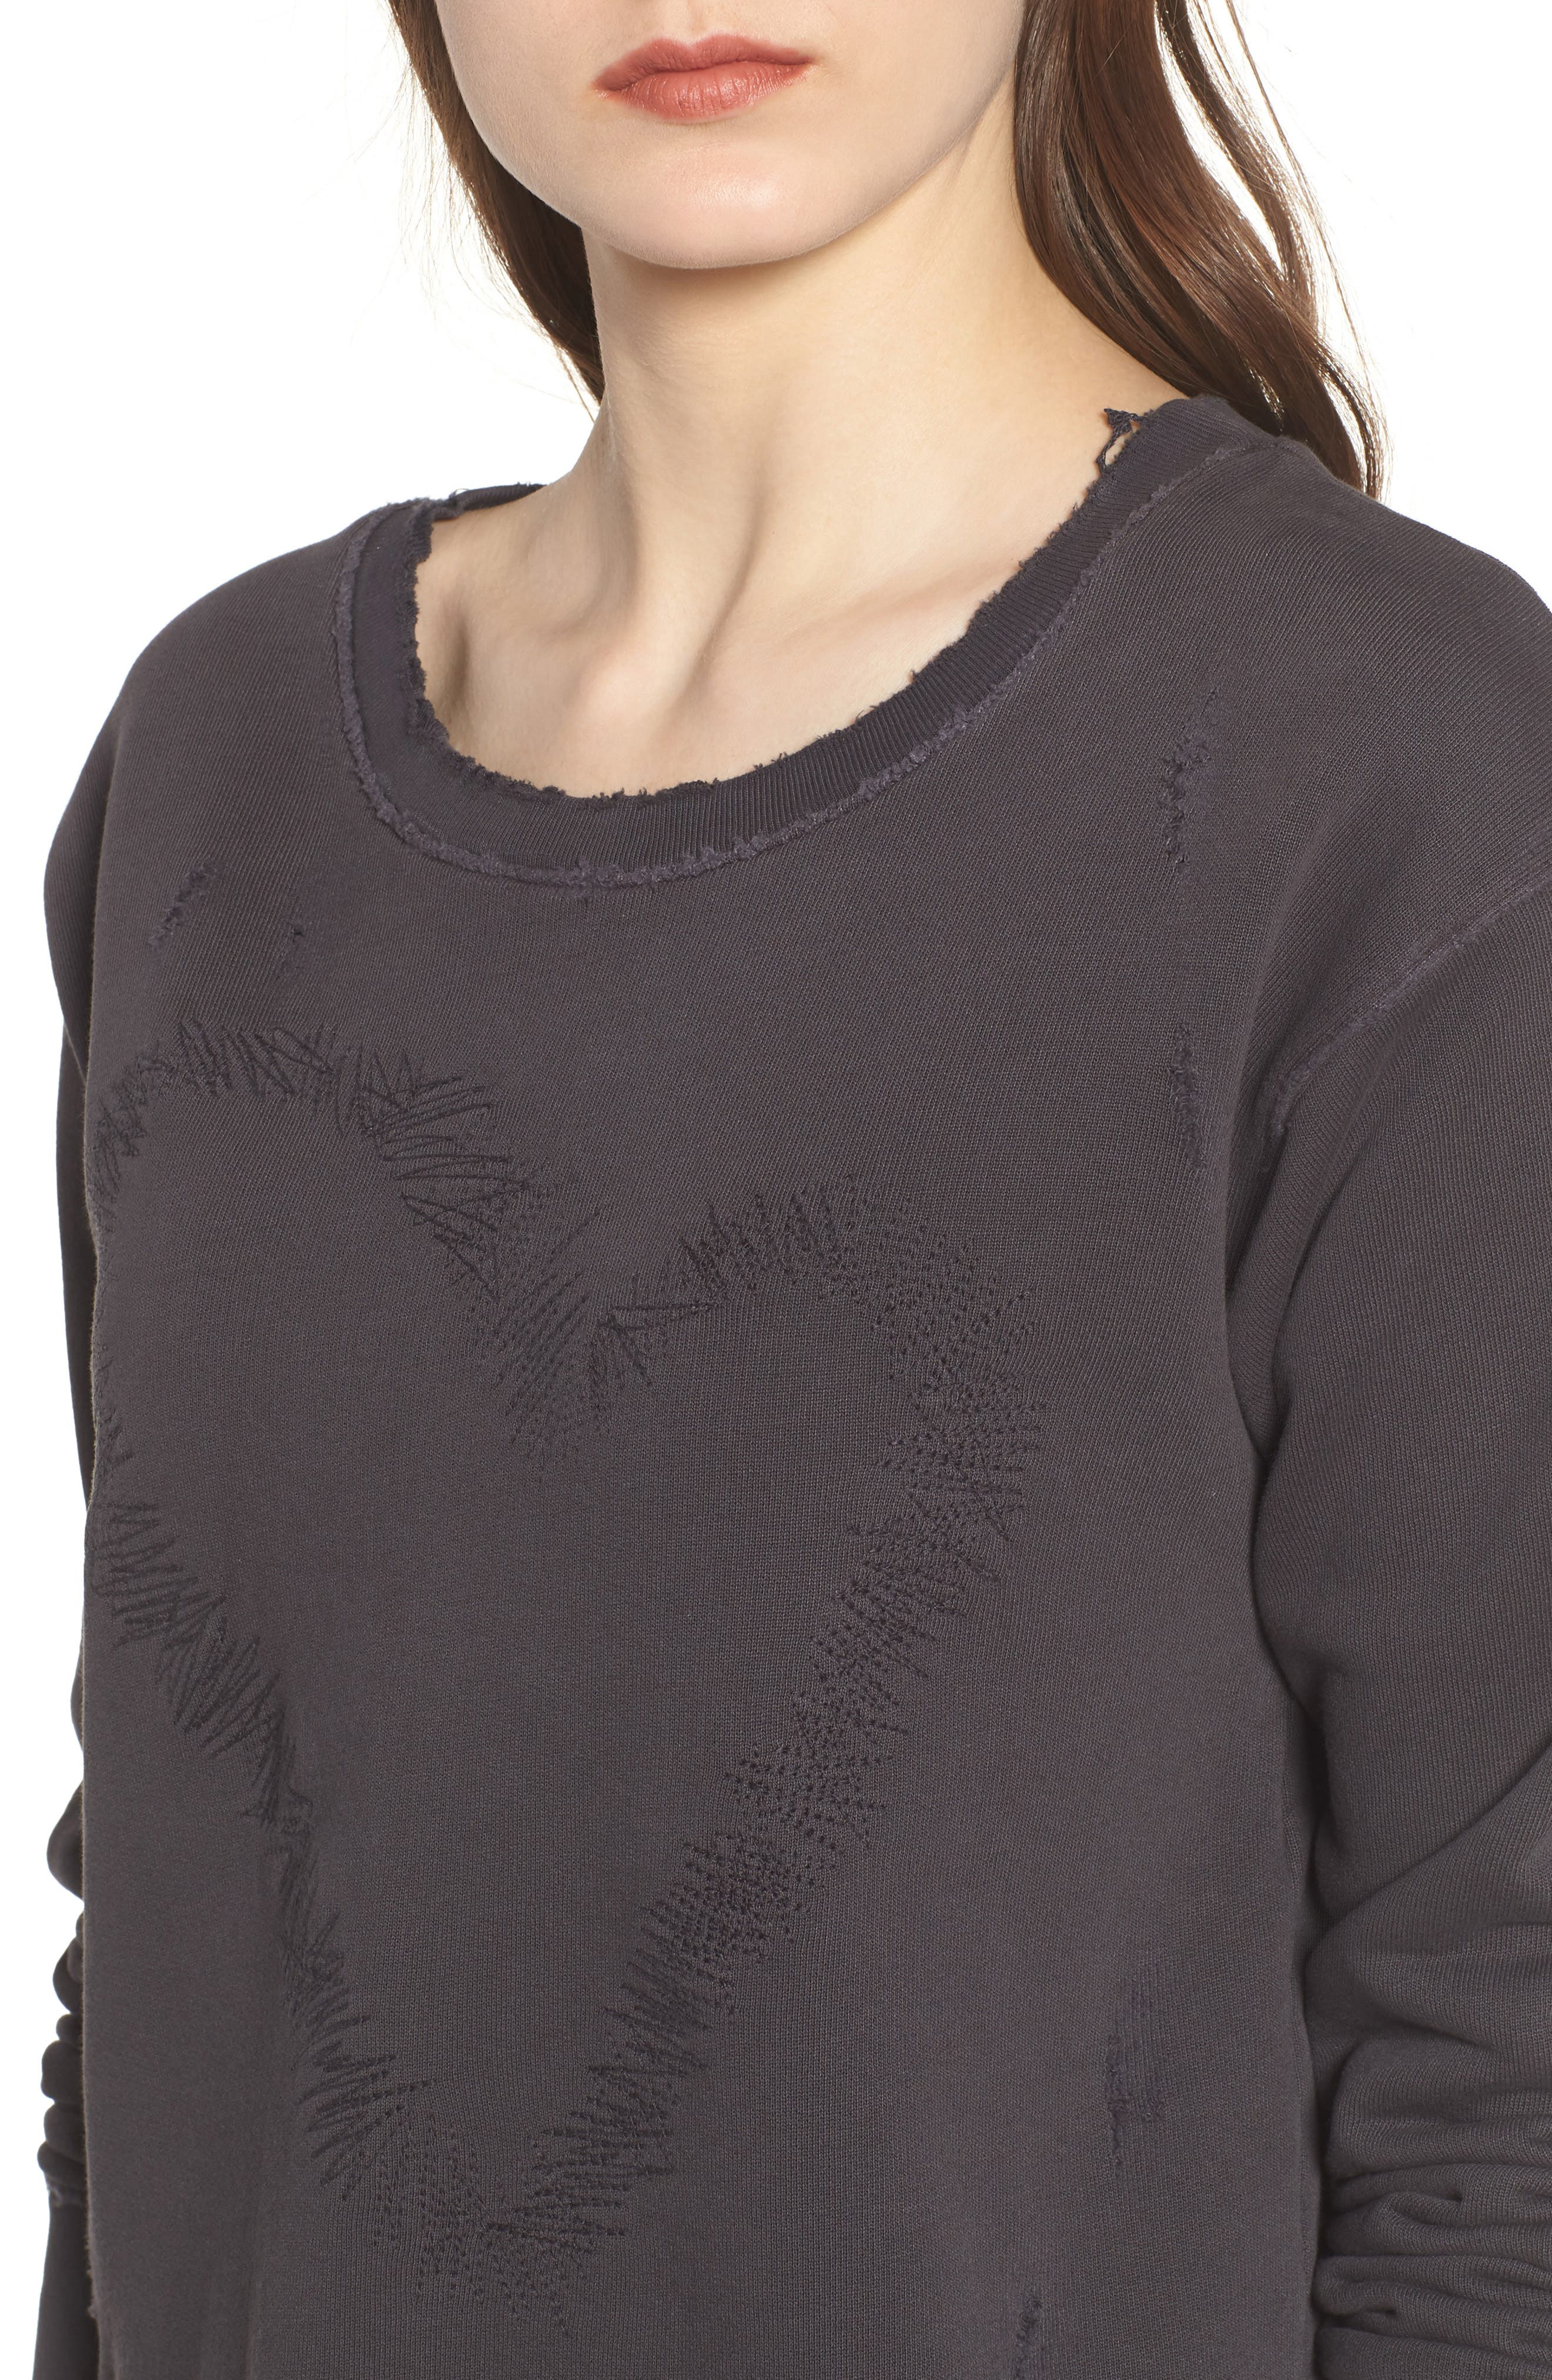 Heart Embroidered Sweatshirt,                             Alternate thumbnail 4, color,                             Carbon Heart 10 Yr Vintage